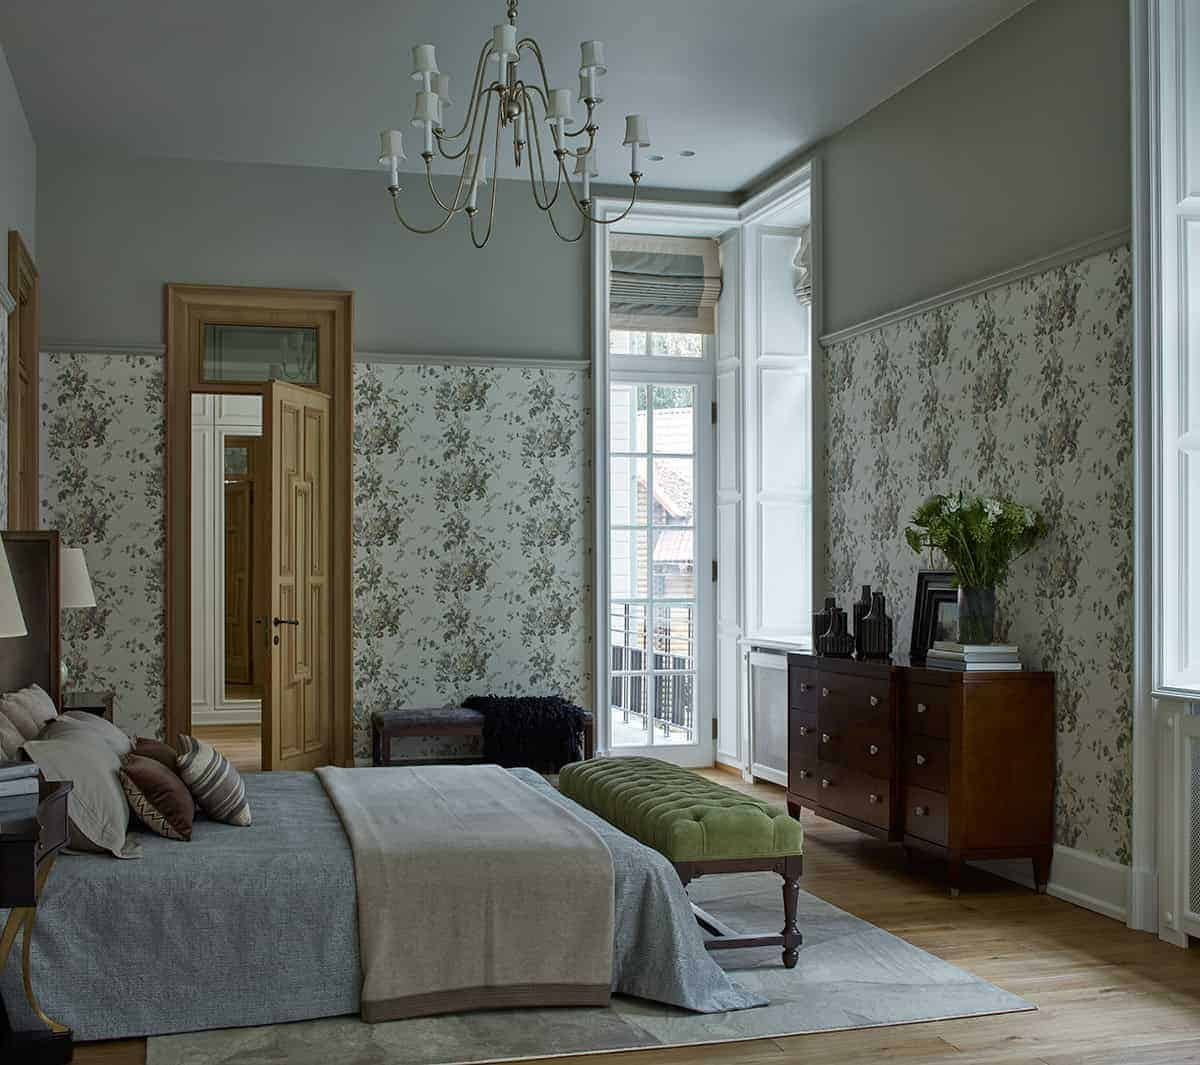 This charming traditional bedroom has green floral walls that serve as a nice background for the wooden dresser that complements the hardwood flooring. There is a light gray area rug underneath the gray bed with a green cushioned bench at the foot of the bed.